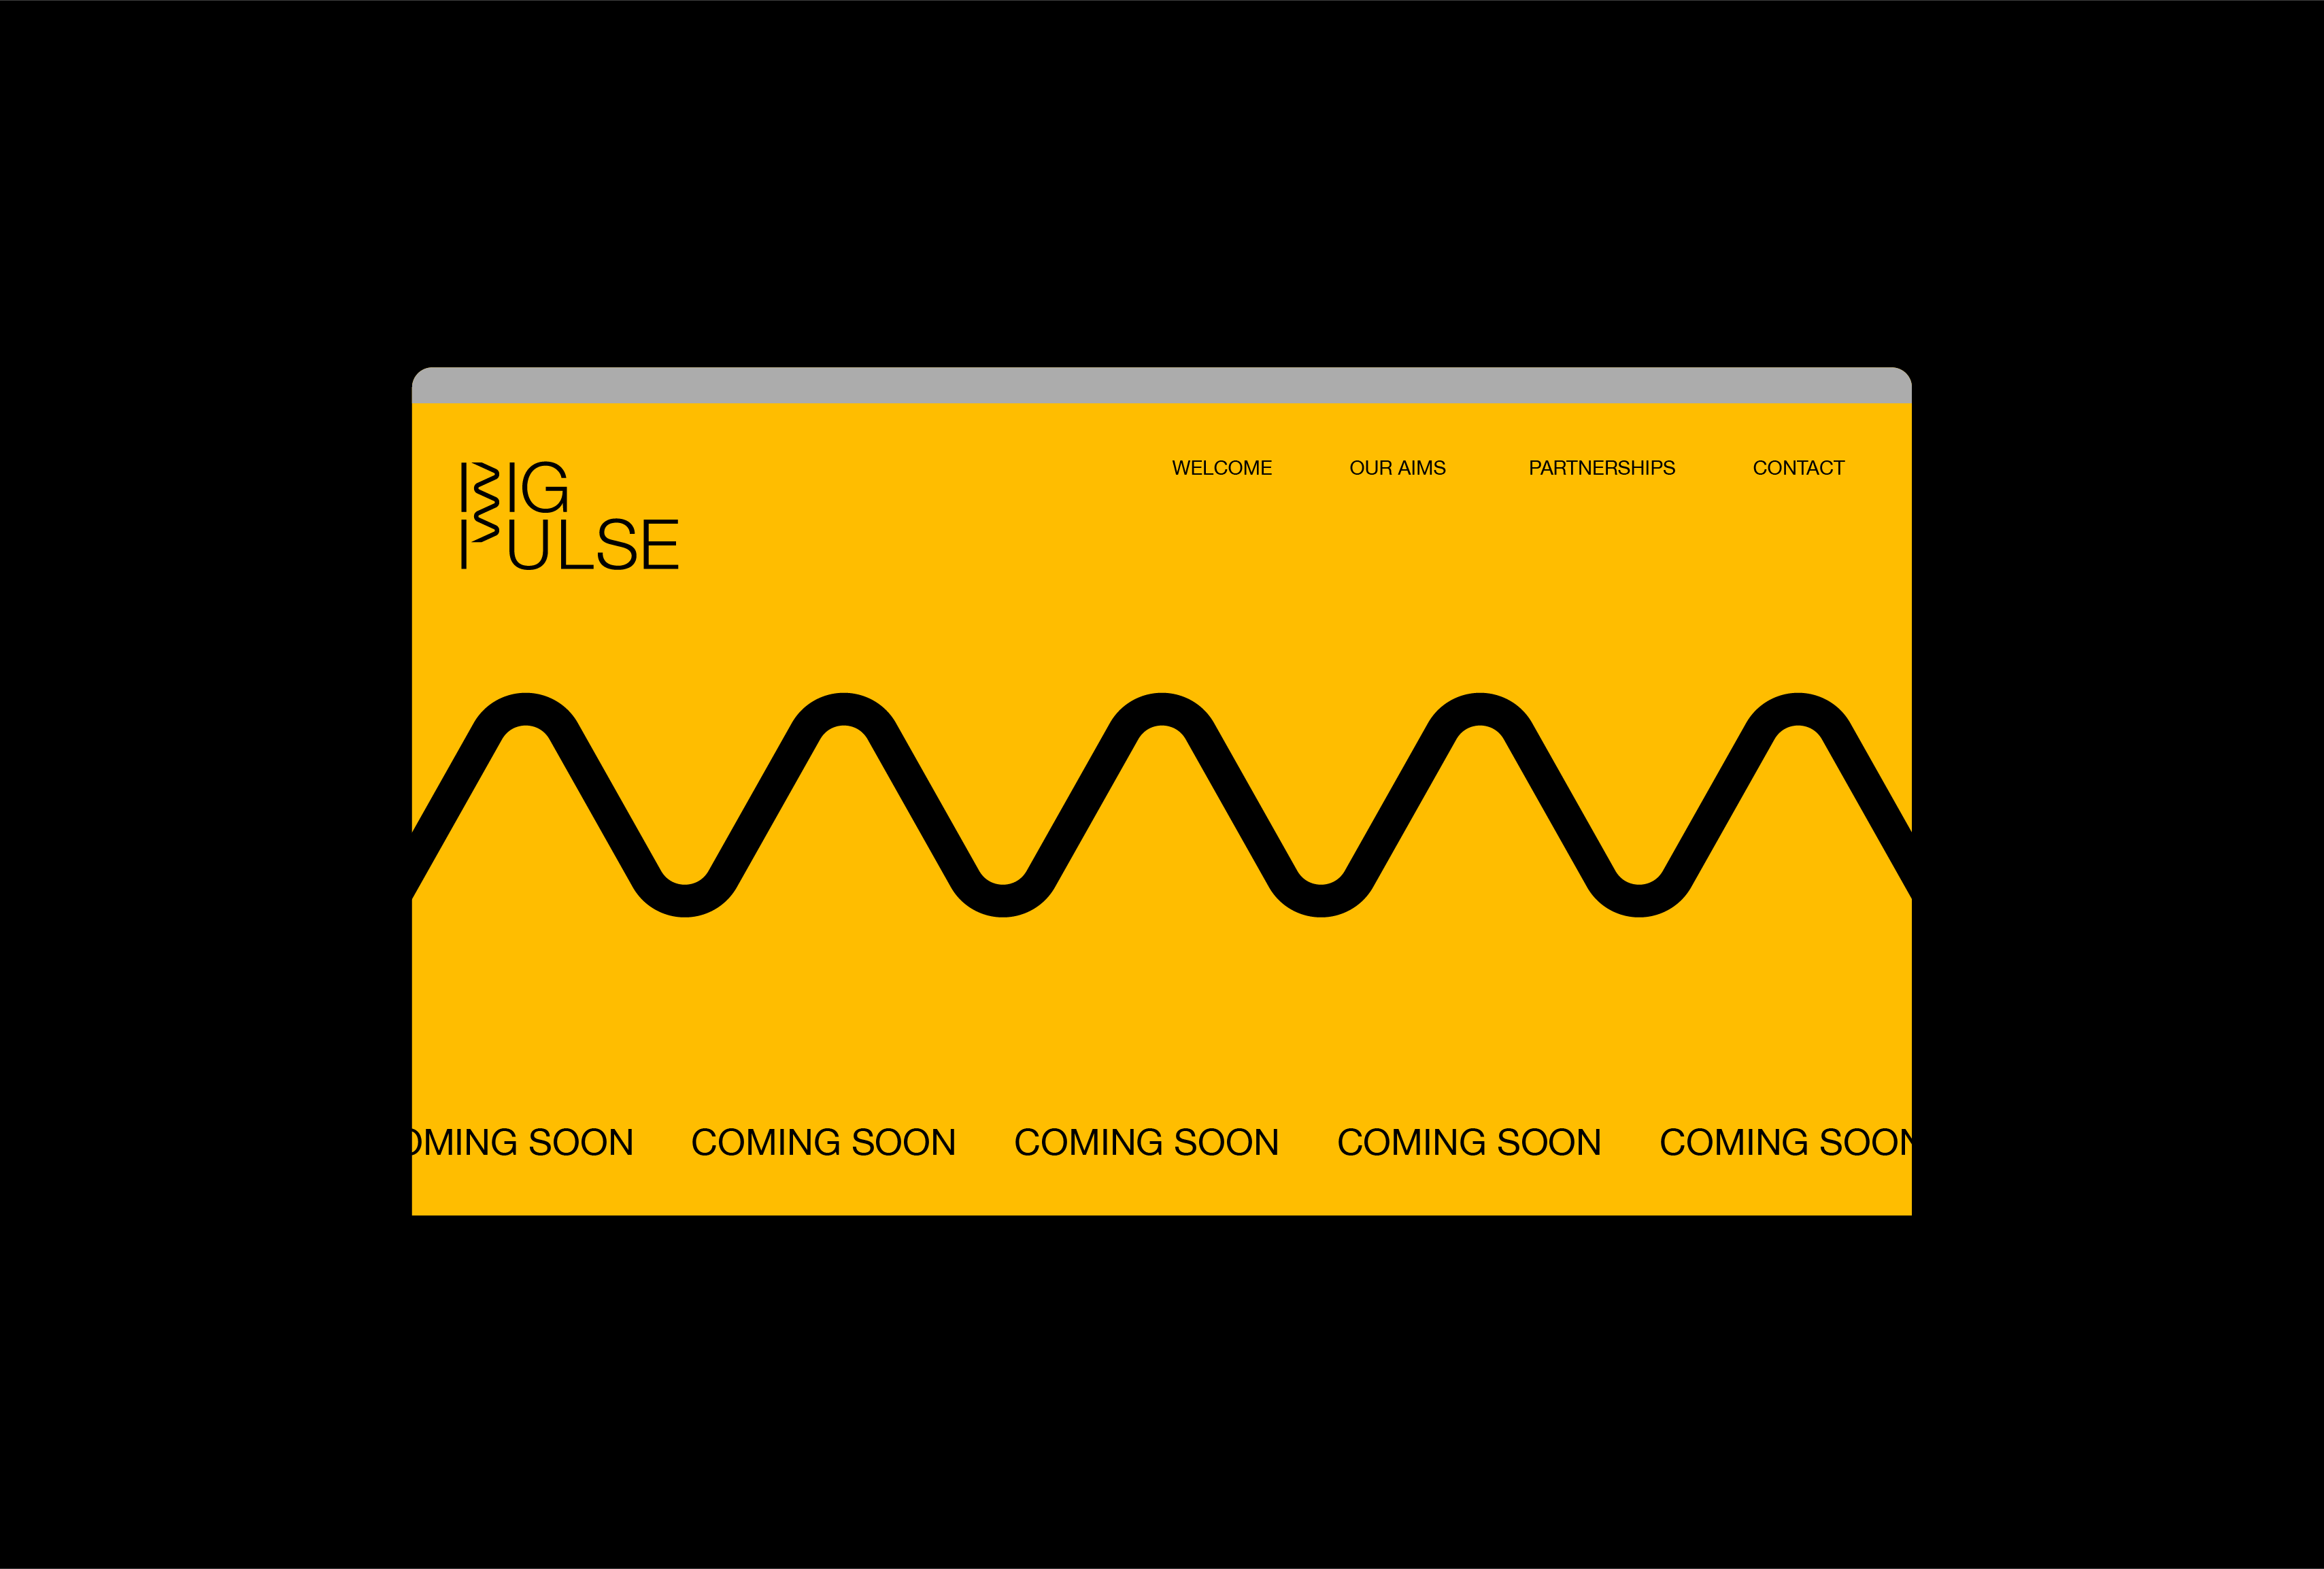 Big Pulse logo and signature line used on their website